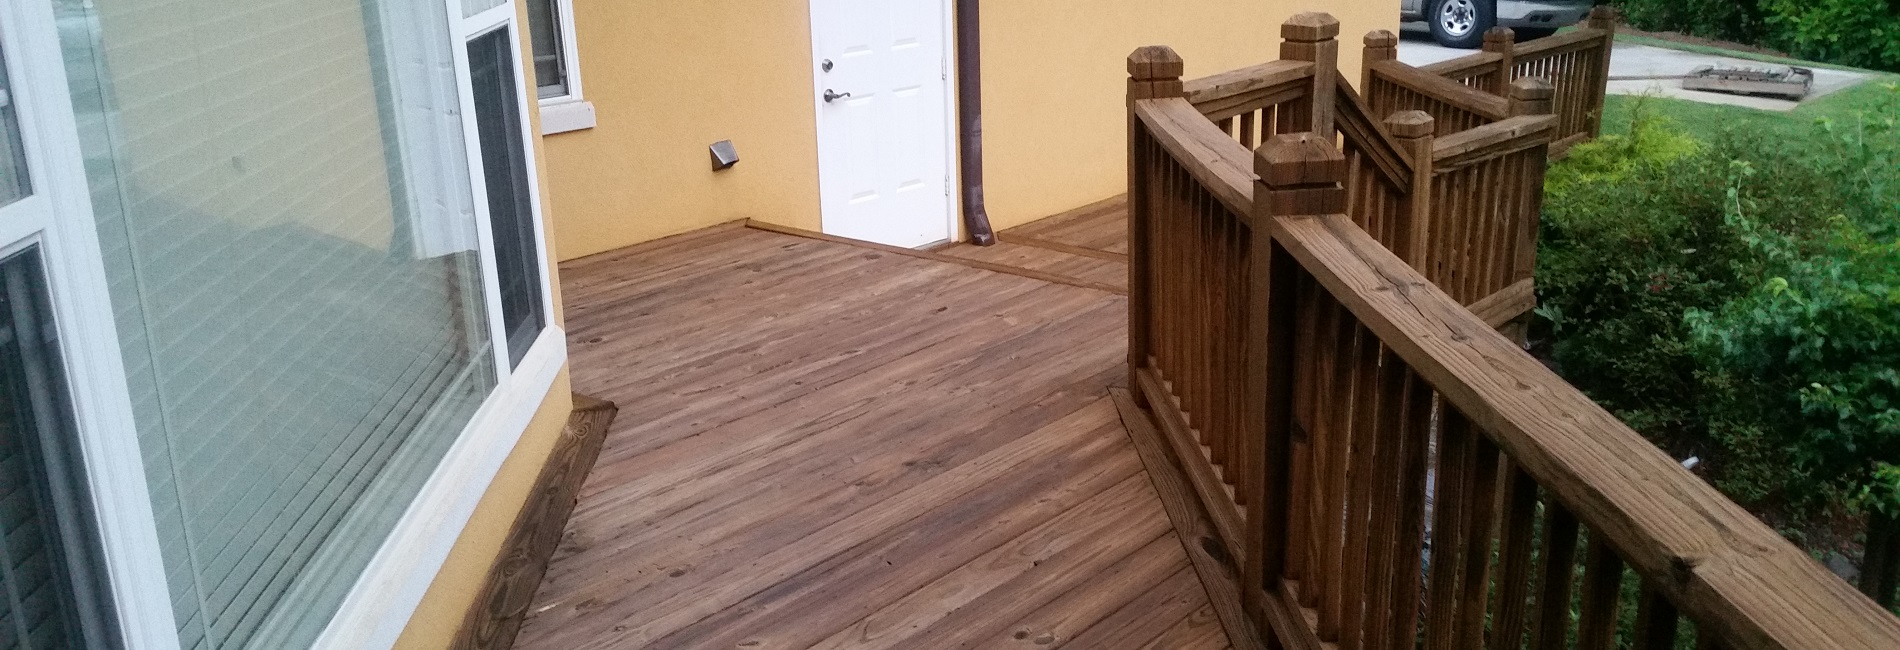 Honey gold wood stain applied to wood deck after deck pressure washing.